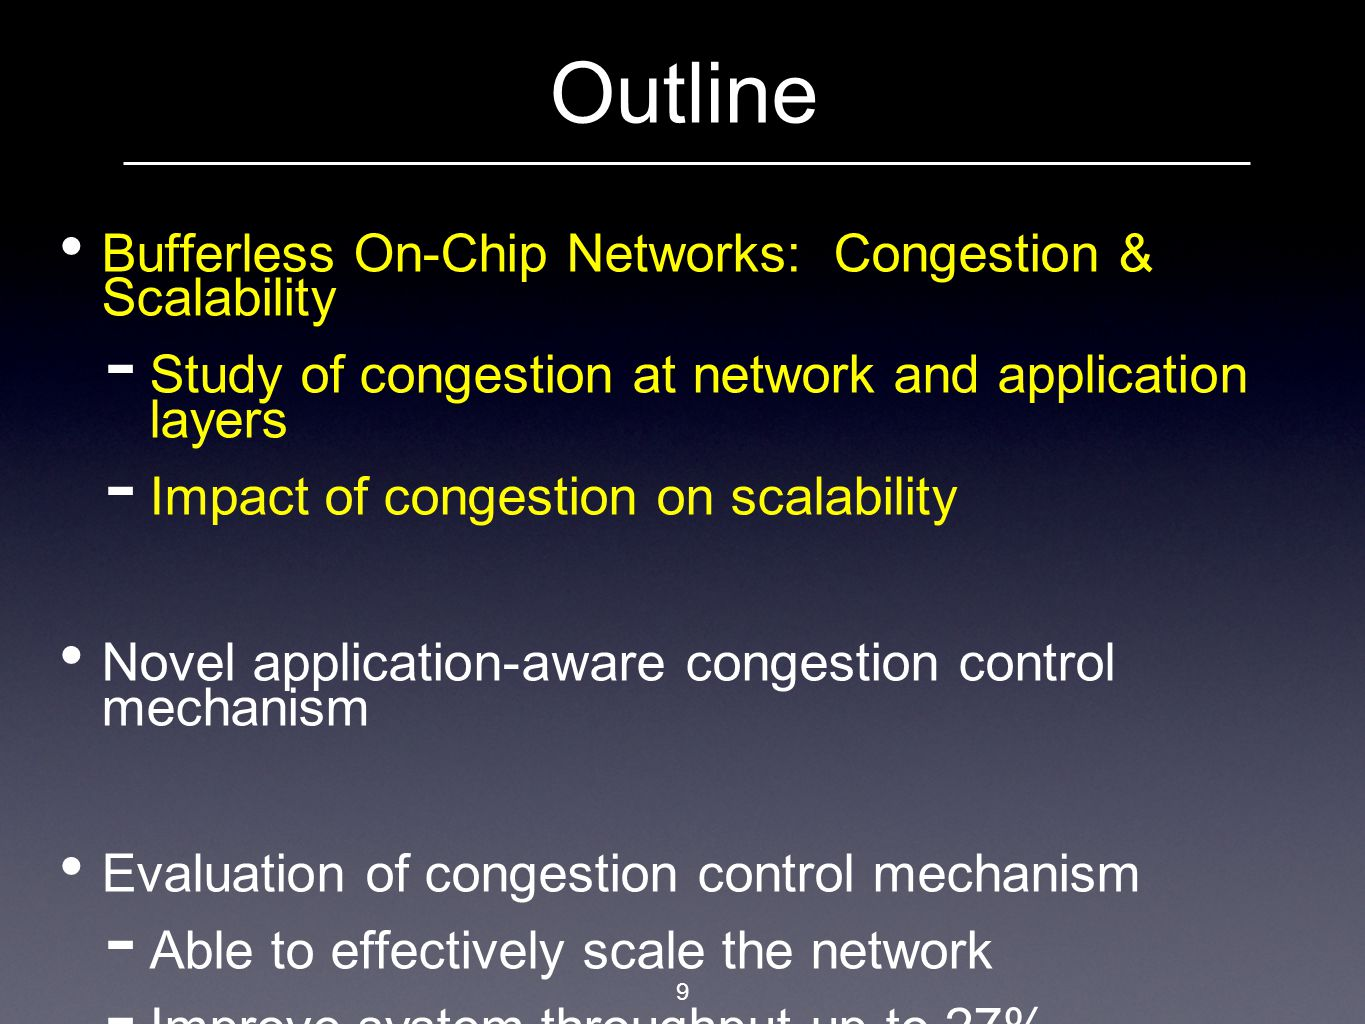 10 Congestion and Scalability Study Prior work: moderate intensity workloads, small on-chip net  Energy and area benefits of going bufferless  throughput comparable to buffered Study: high intensity workloads & large network (4096 cores)  Still comparable throughput with the benefits of bufferless.